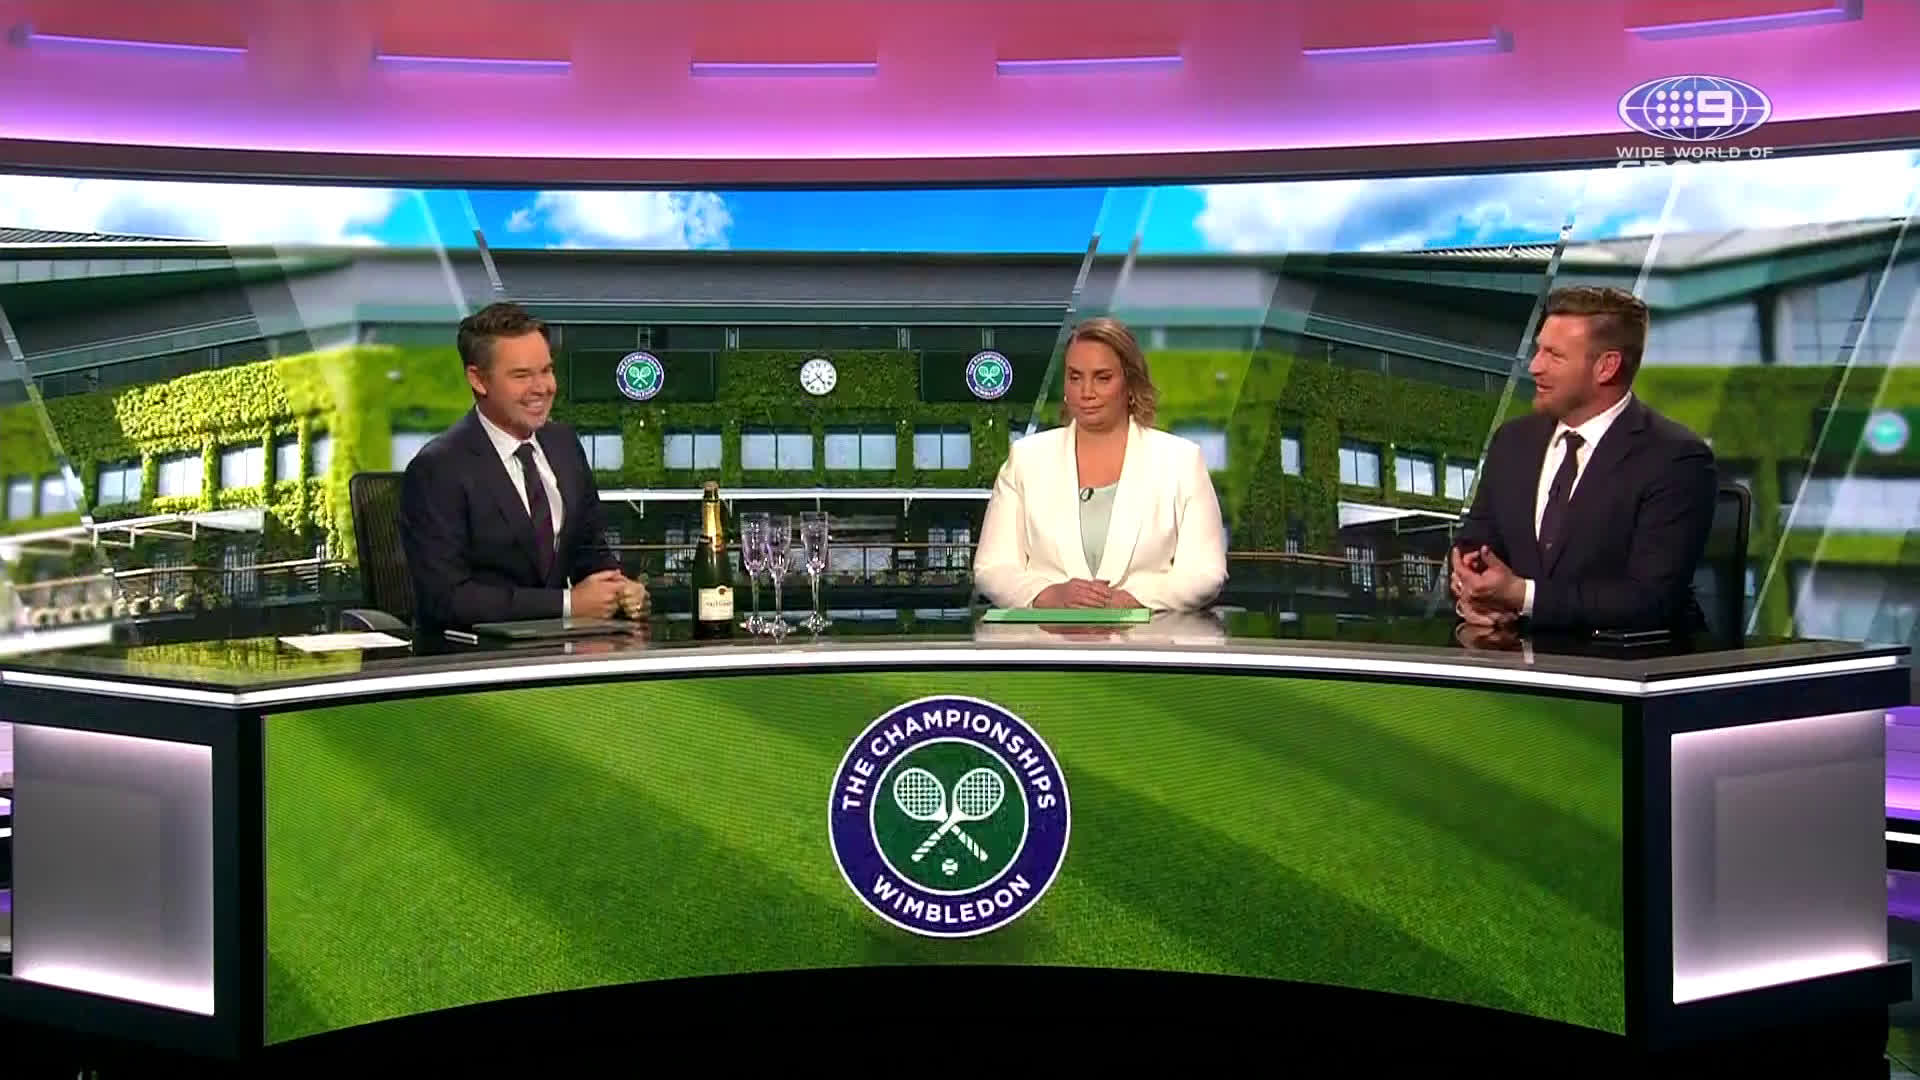 This is how Australian's celebrate our Wimbledon Champions on live TV